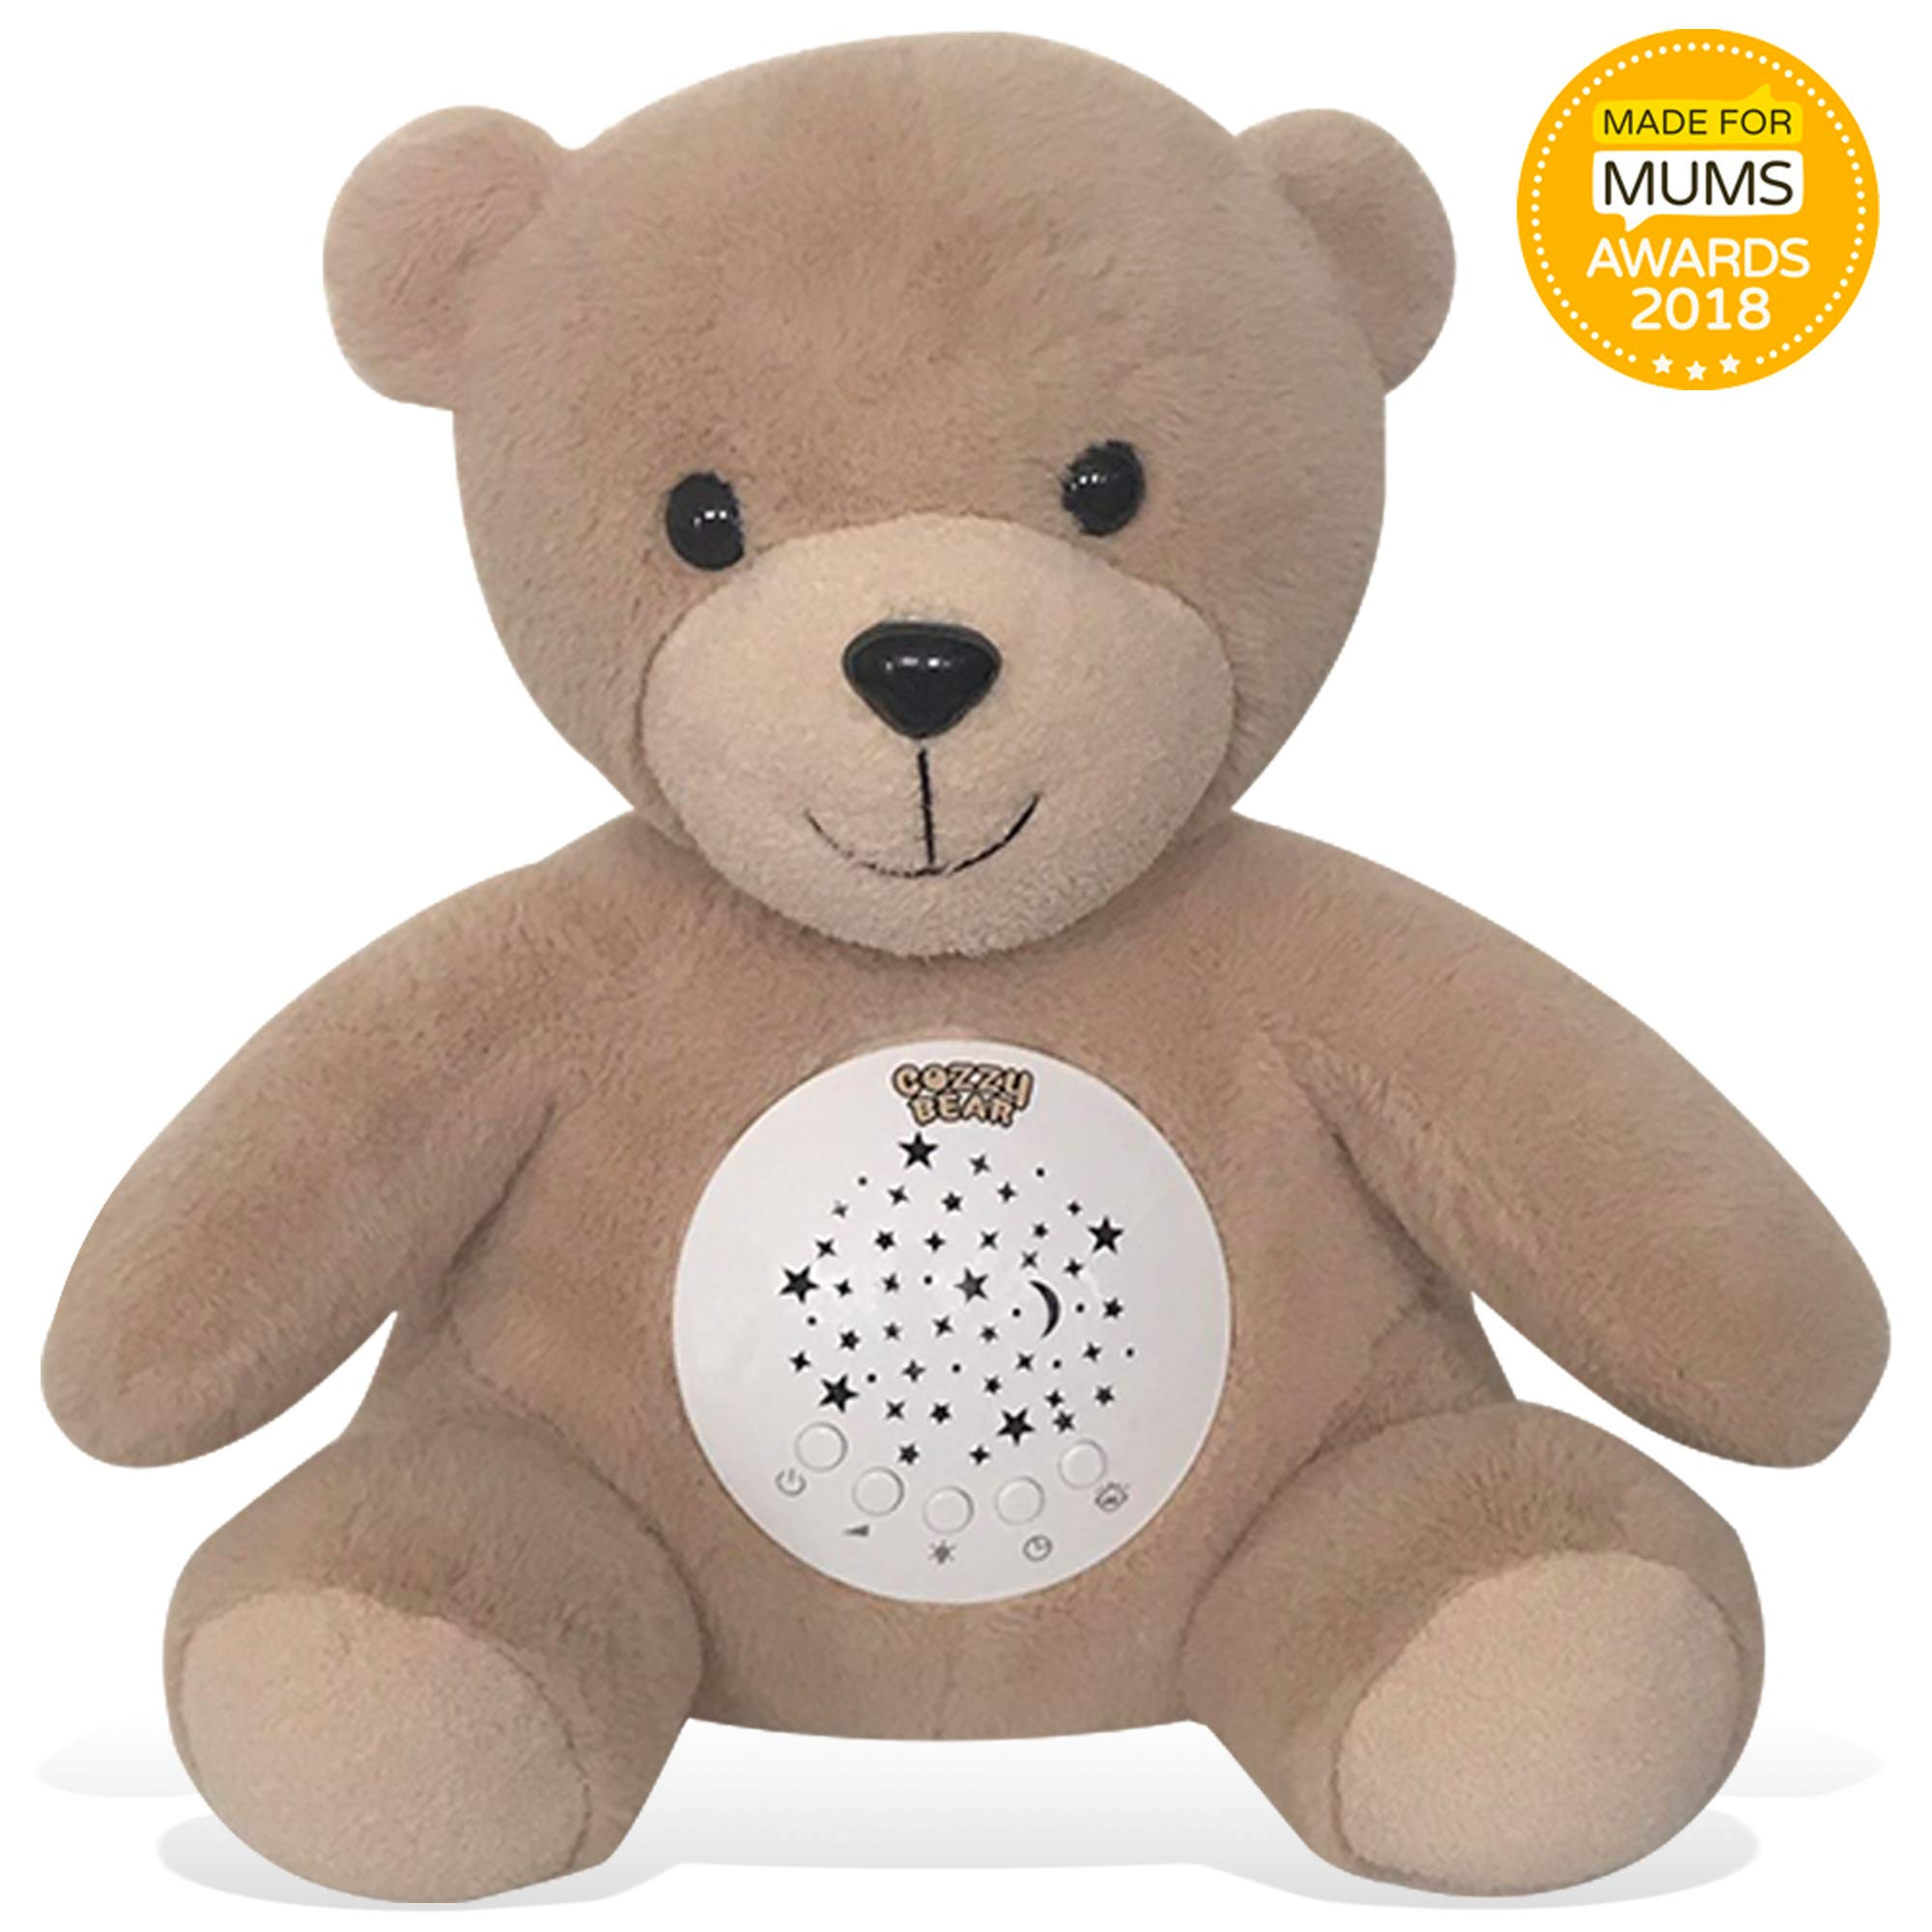 Cozzy Bear Sleep Soother | Baby White Noise & Lullaby Sound Machine | Rotating Colors Star Projector | Cry Sensor | USB Rechargeable Sleeping & Calming Aid | 2019 Best Registry for Baby Shower Gift by InfantBay